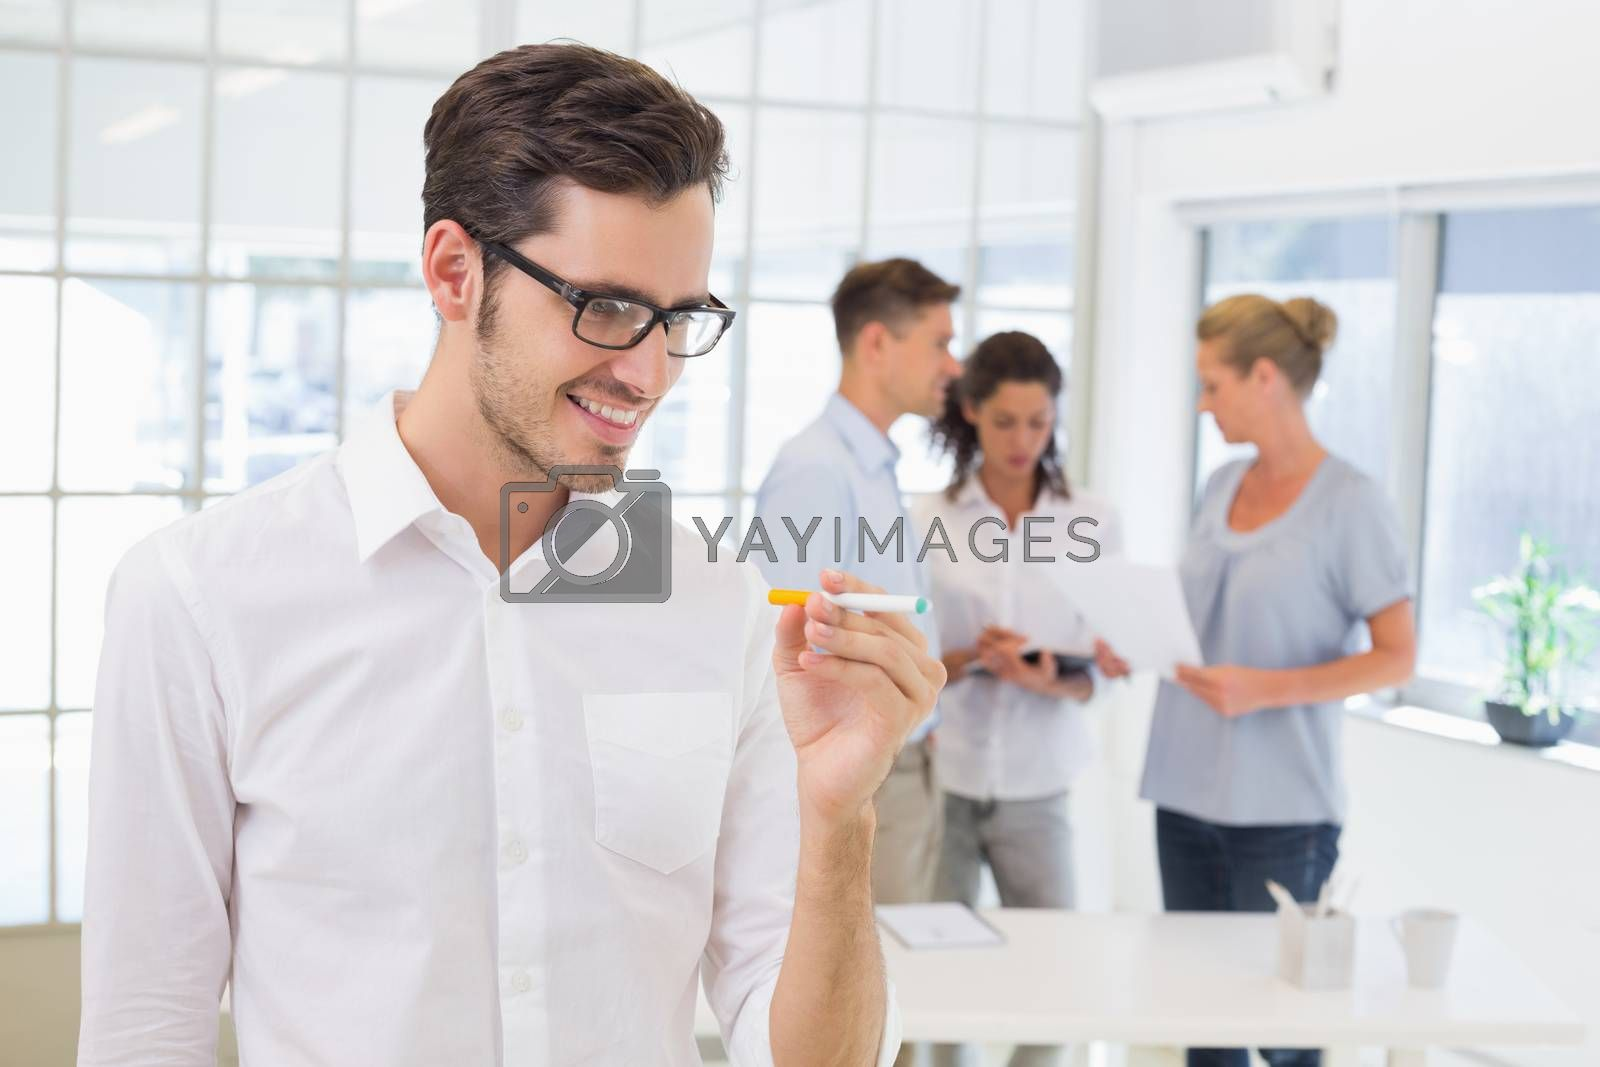 Royalty free image of Casual businessman smiling at his electronic cigarette by Wavebreakmedia